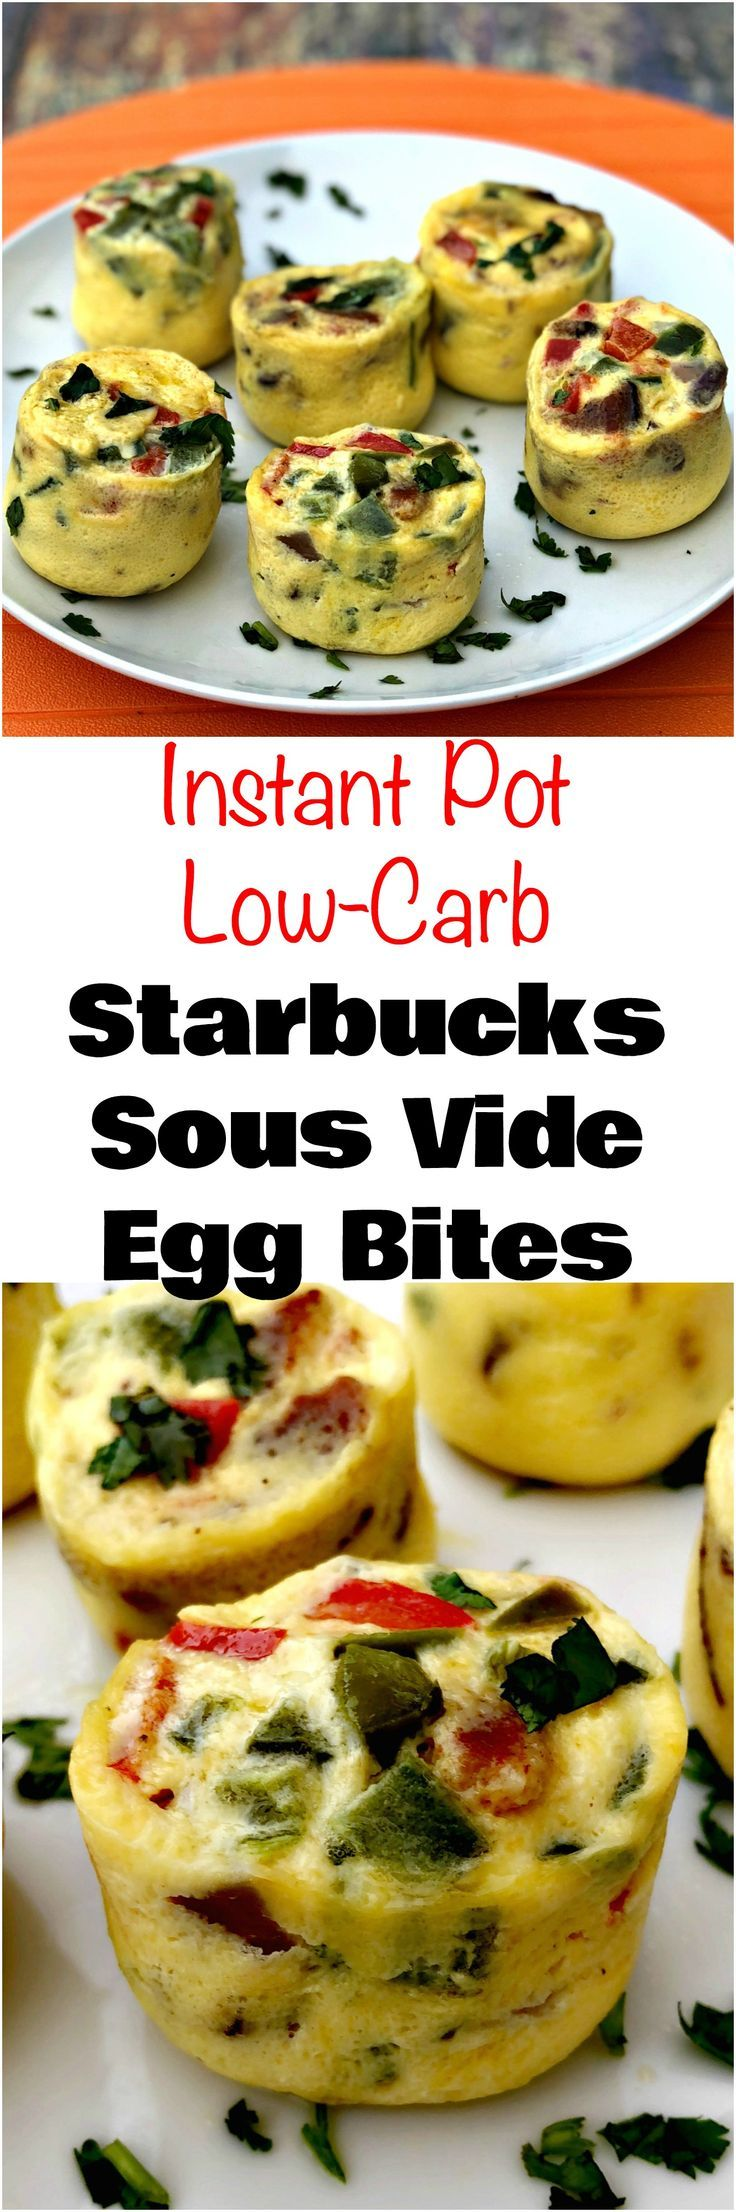 Instant Pot Low-Carb Starbucks Sous Vide Bacon Egg Bites is a quick and easy, protein, keto pressure cooker recipe with eggs, egg whites, and bacon.